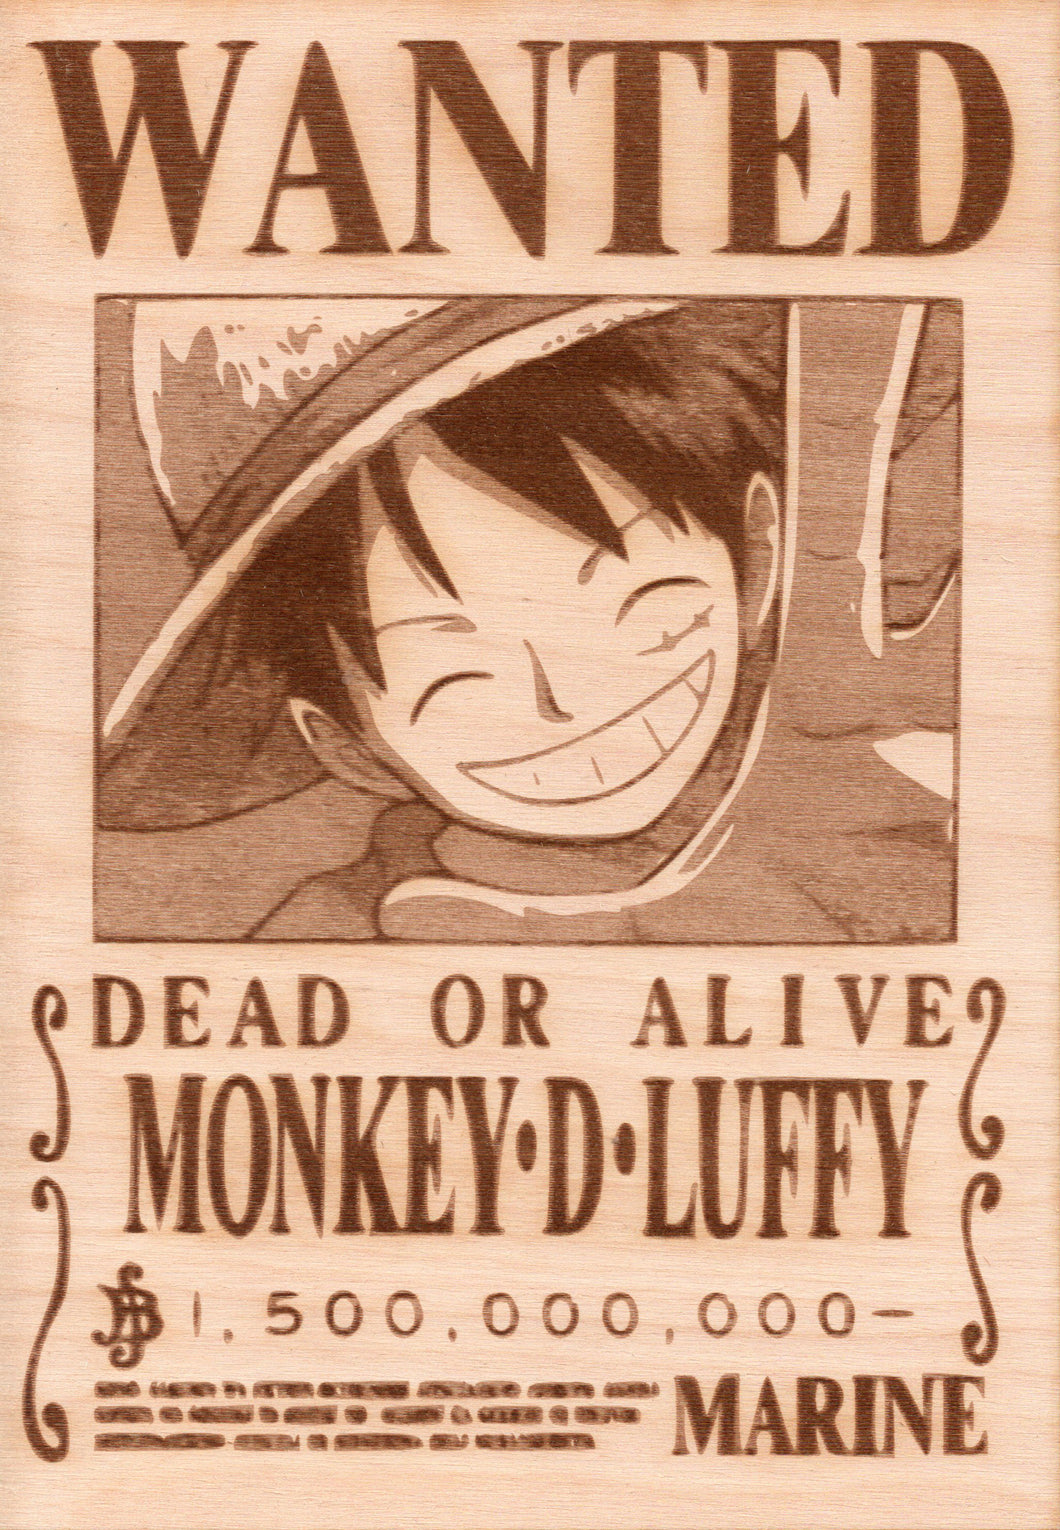 One Piece - Luffy Wanted Poster - TantrumCollectibles.com